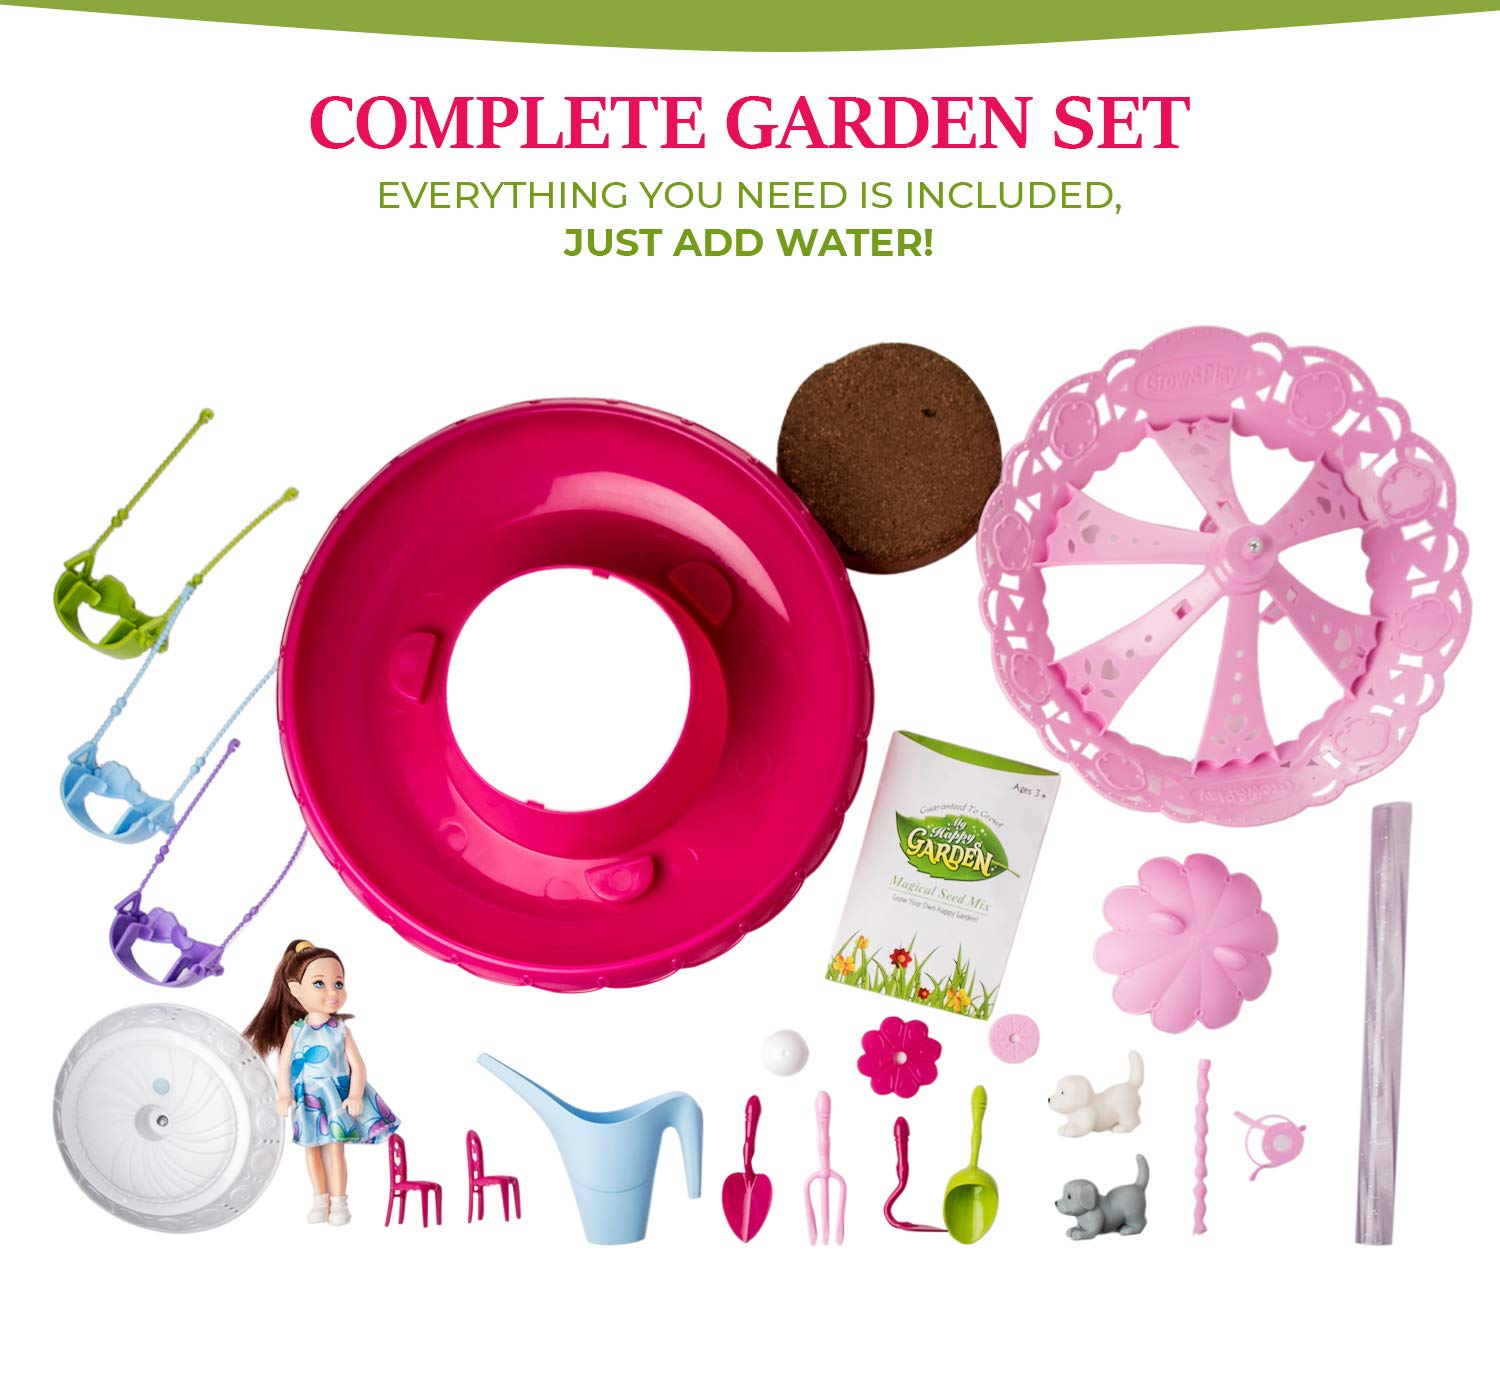 Kids Garden Set for Boys and Girls 3 - 10 Years Old - Best Fairy Gardening Gift - Grow Magic Flowers and Plants Indoor - Montessori Toy for Toddlers (Pink)